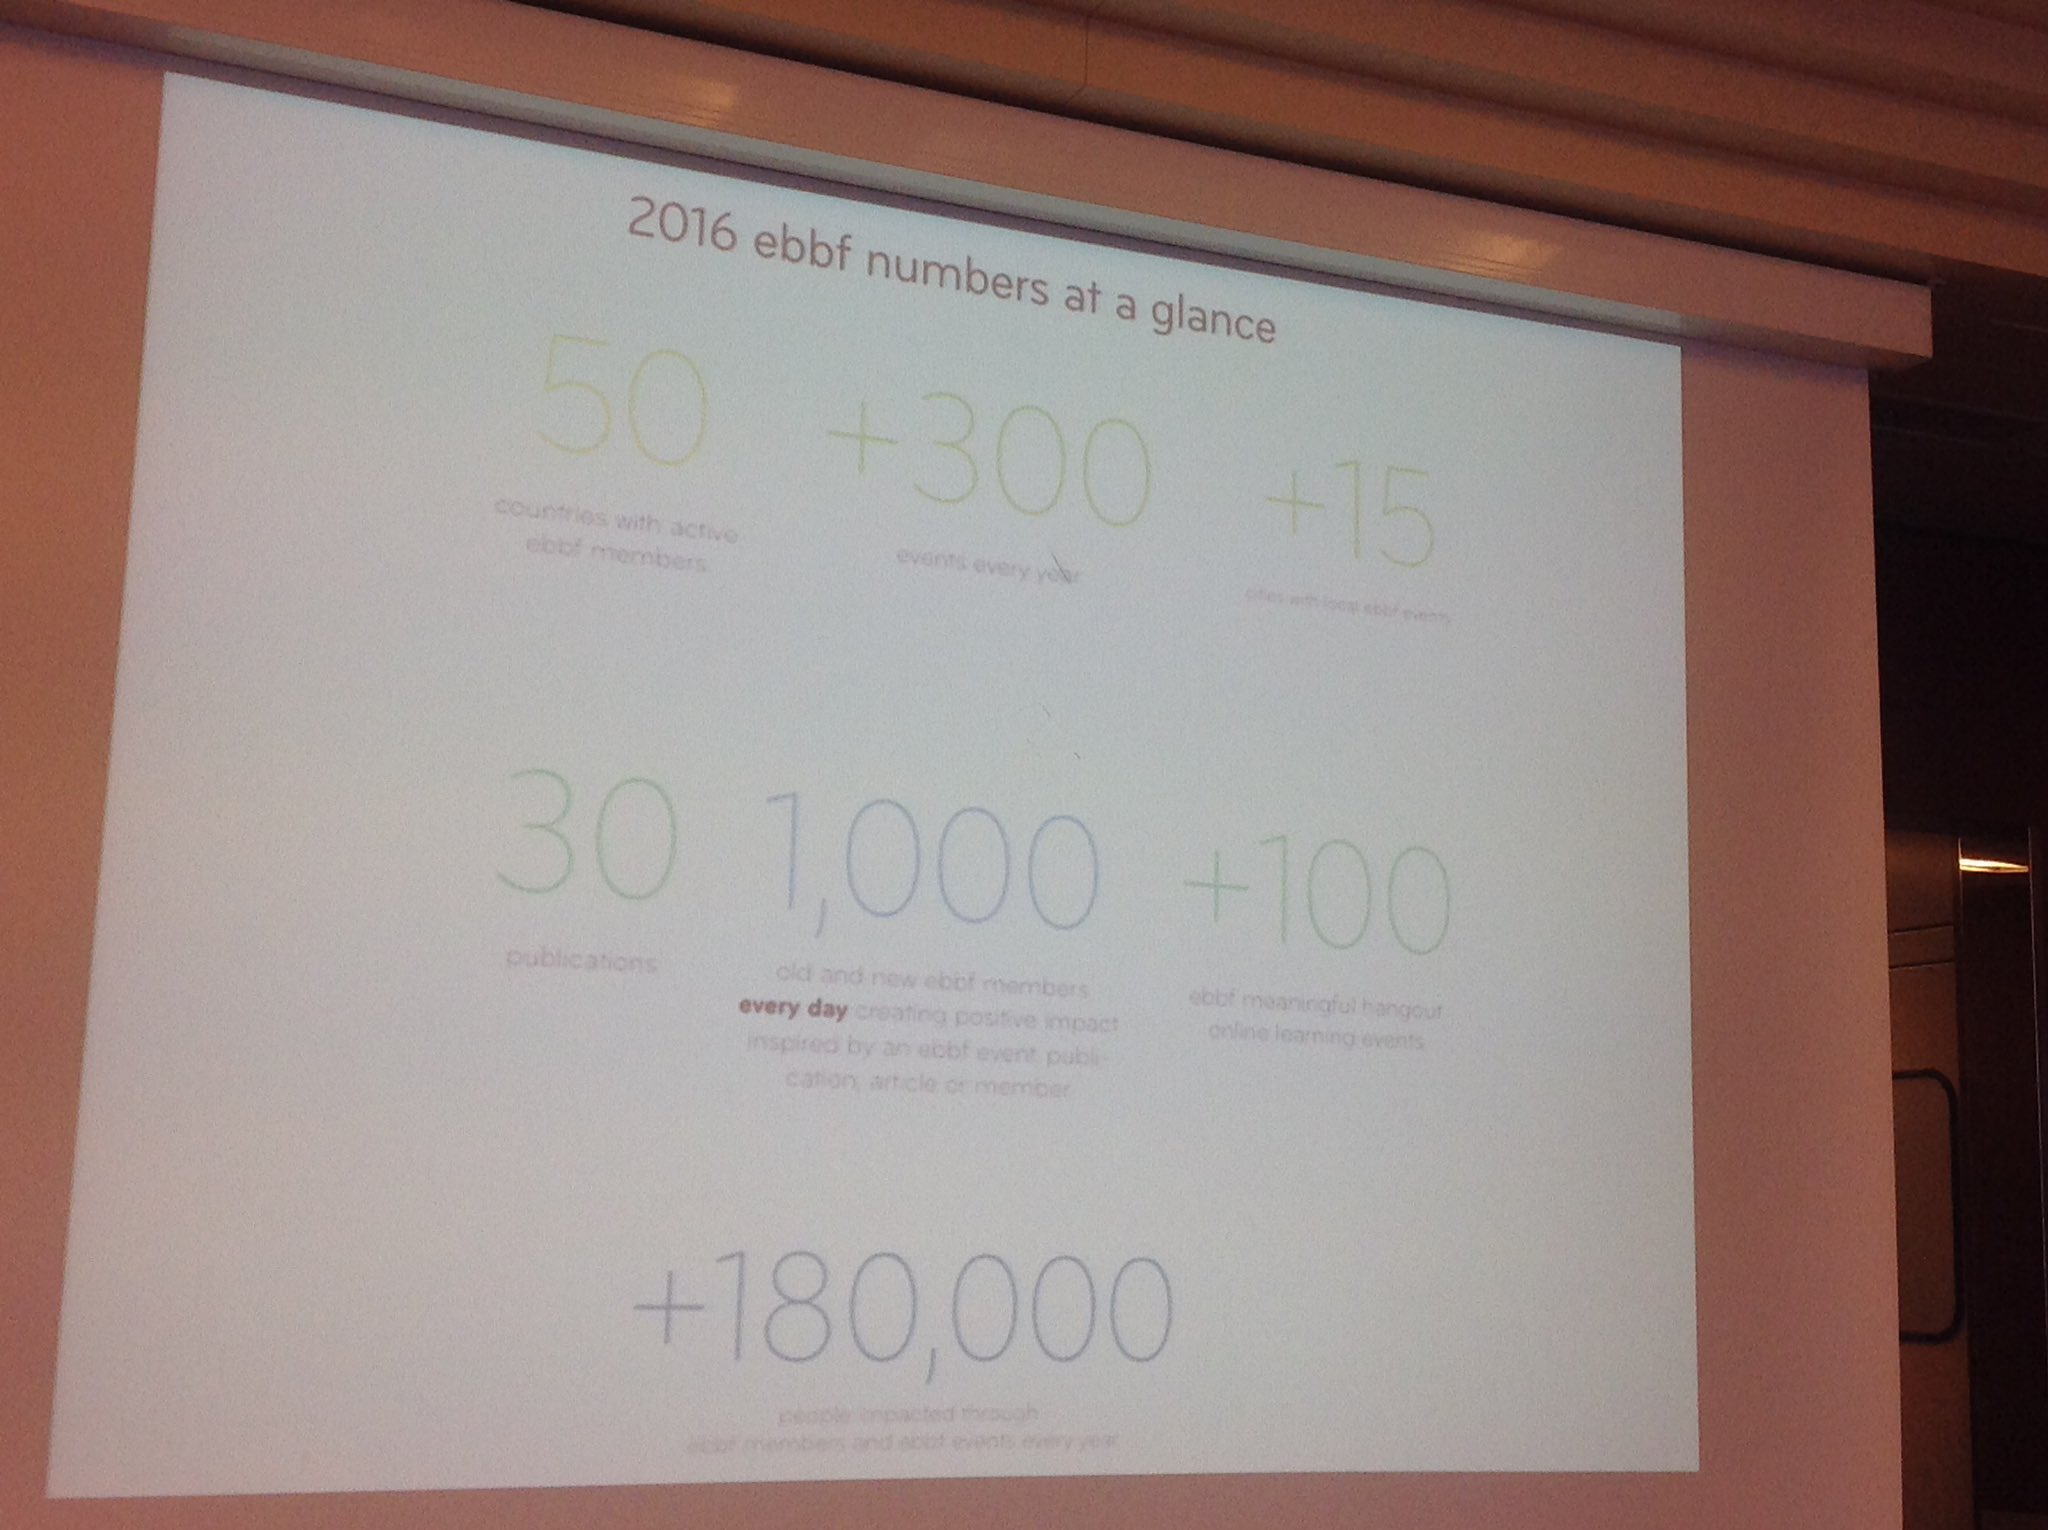 2016 @ebbf numbers at a glance #AGM #ebbfdiversity https://t.co/3OMVPj6T8x